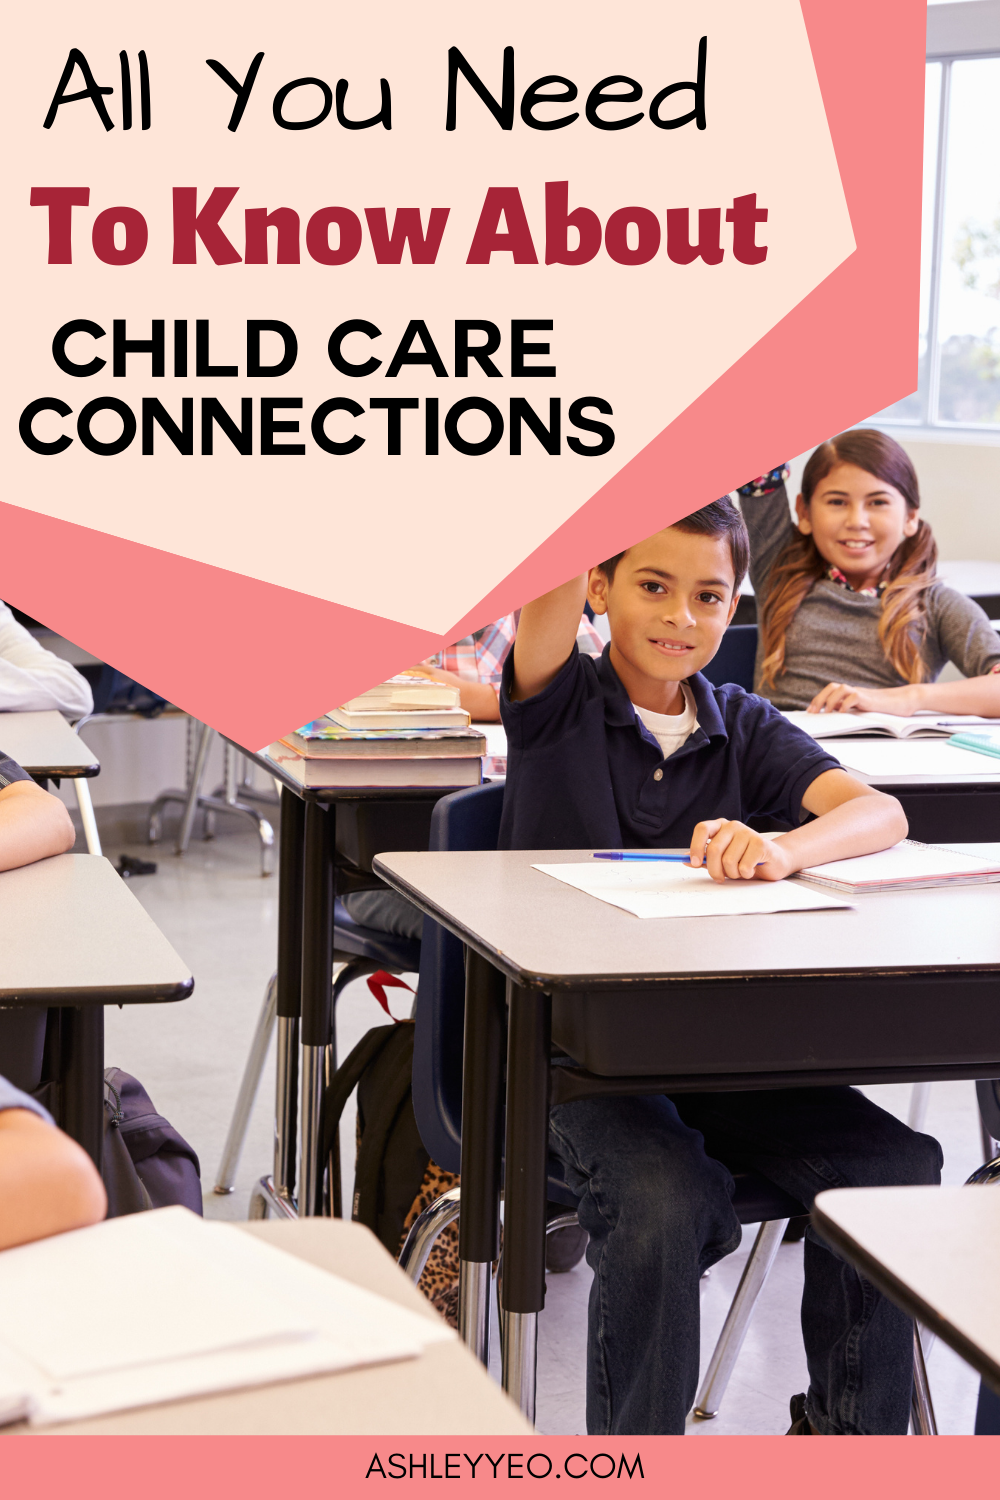 All You Need To Know About Child Care Connections